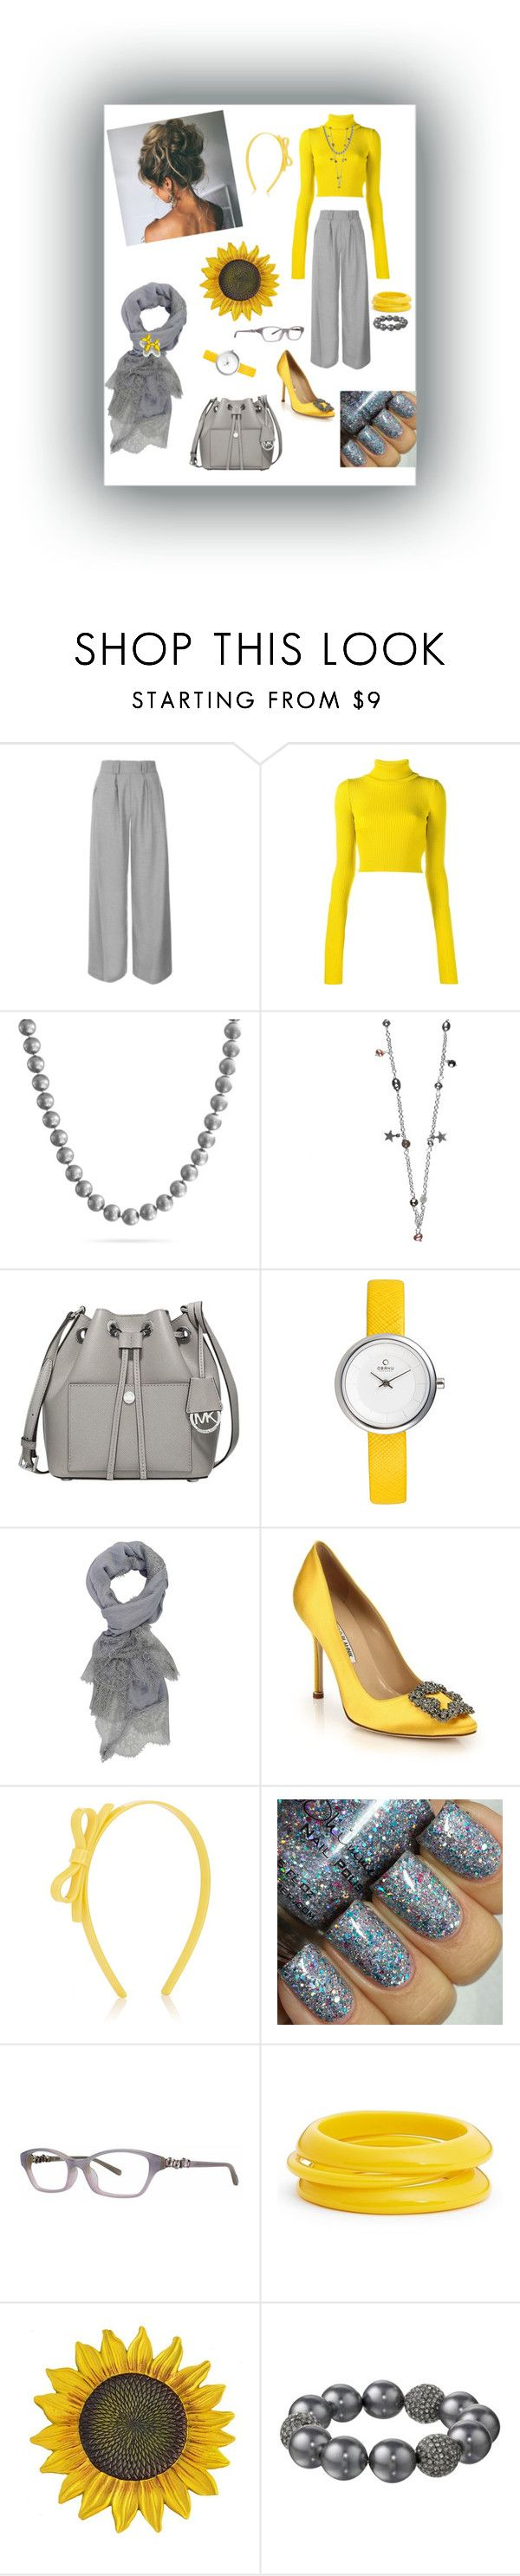 """Yellow & Grey day"" by kristina-sandvig on Polyvore featuring Topshop, Jacquemus, Bling Jewelry, Michael Kors, Manolo Blahnik, Lilies & Roses, Vera Wang, ZENZii and Kenneth Jay Lane"